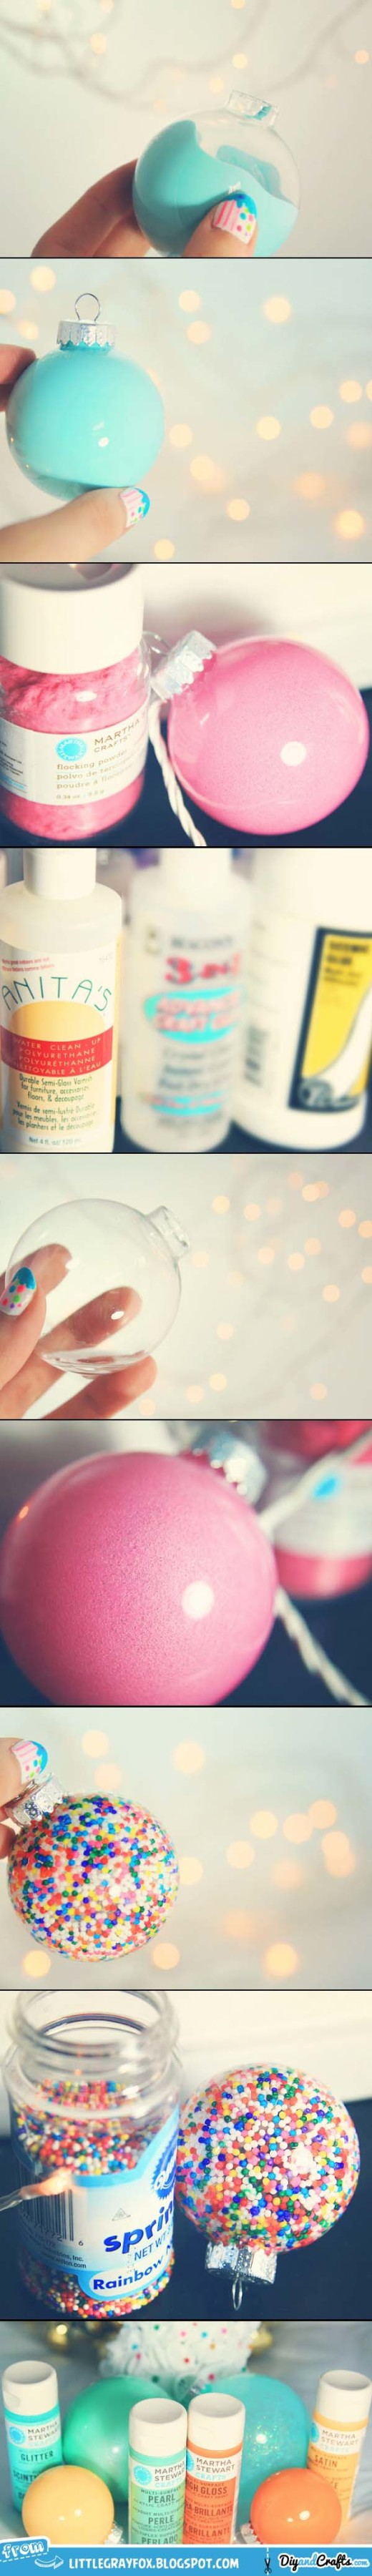 Simple Filled and Painted Christmas Ornaments